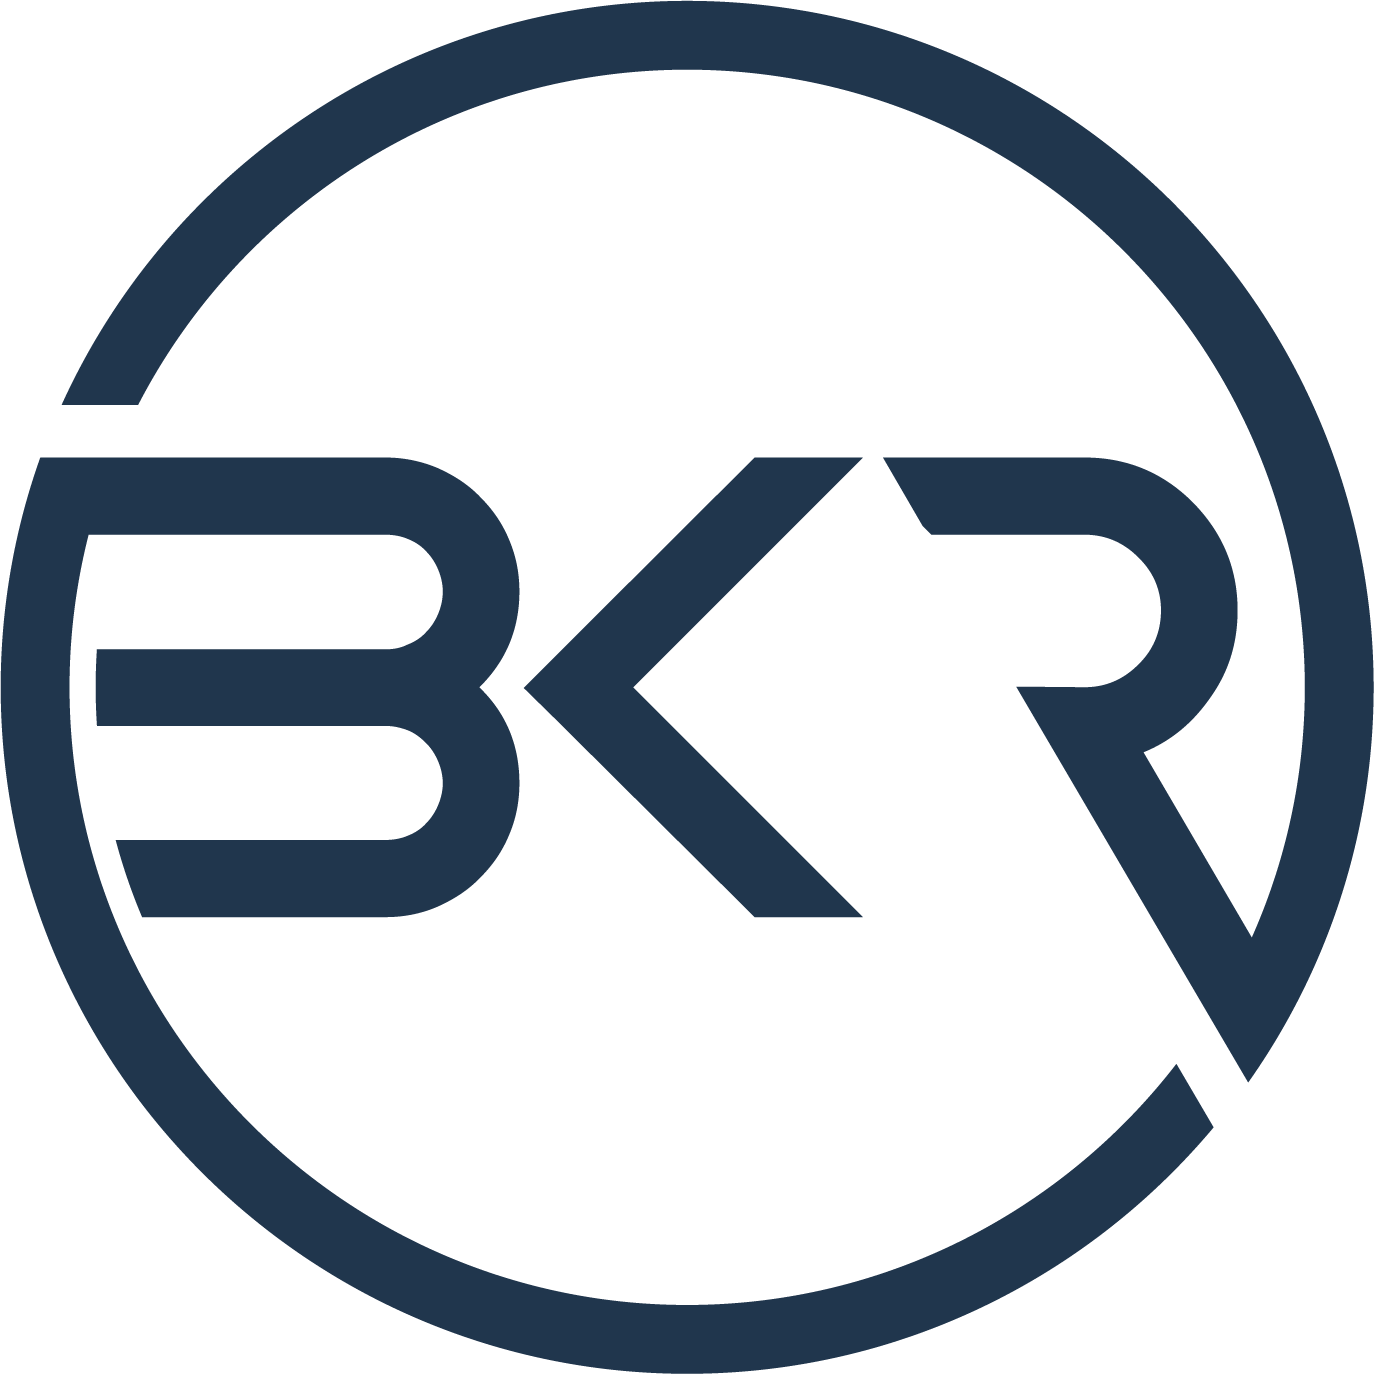 BKR Group